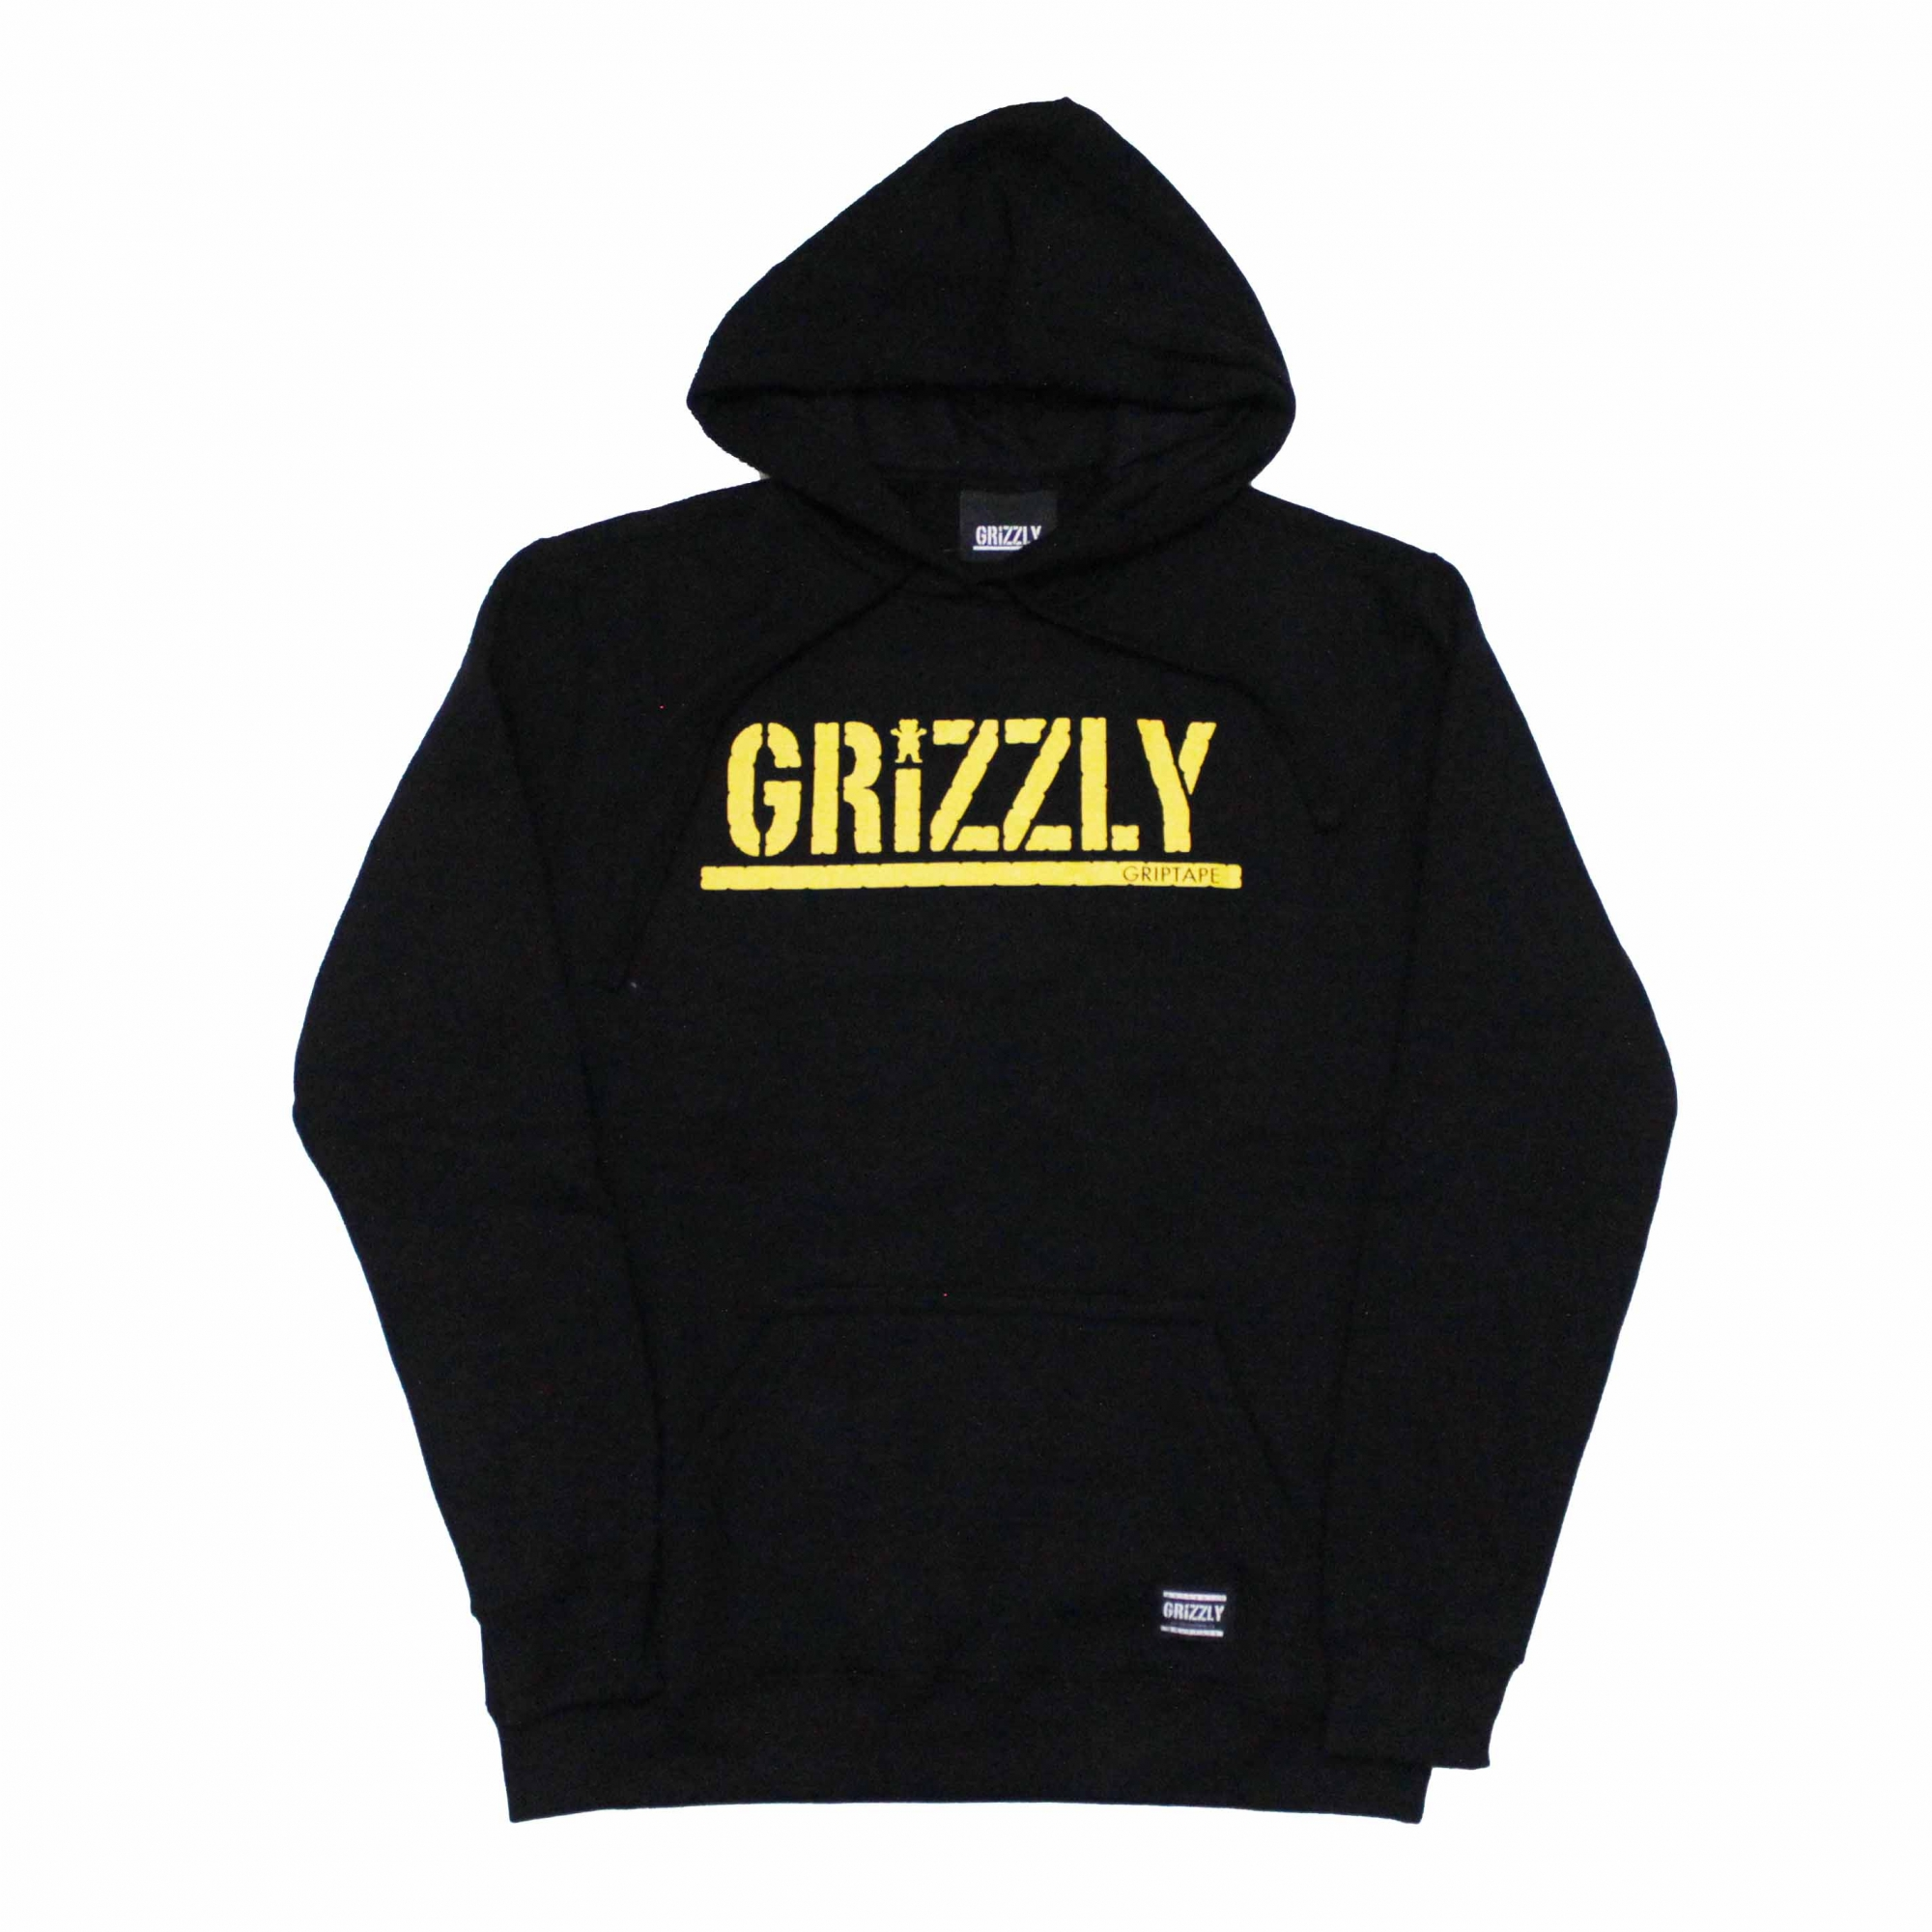 Moletom Grizzly Canguru Yellow Stamped - Preto